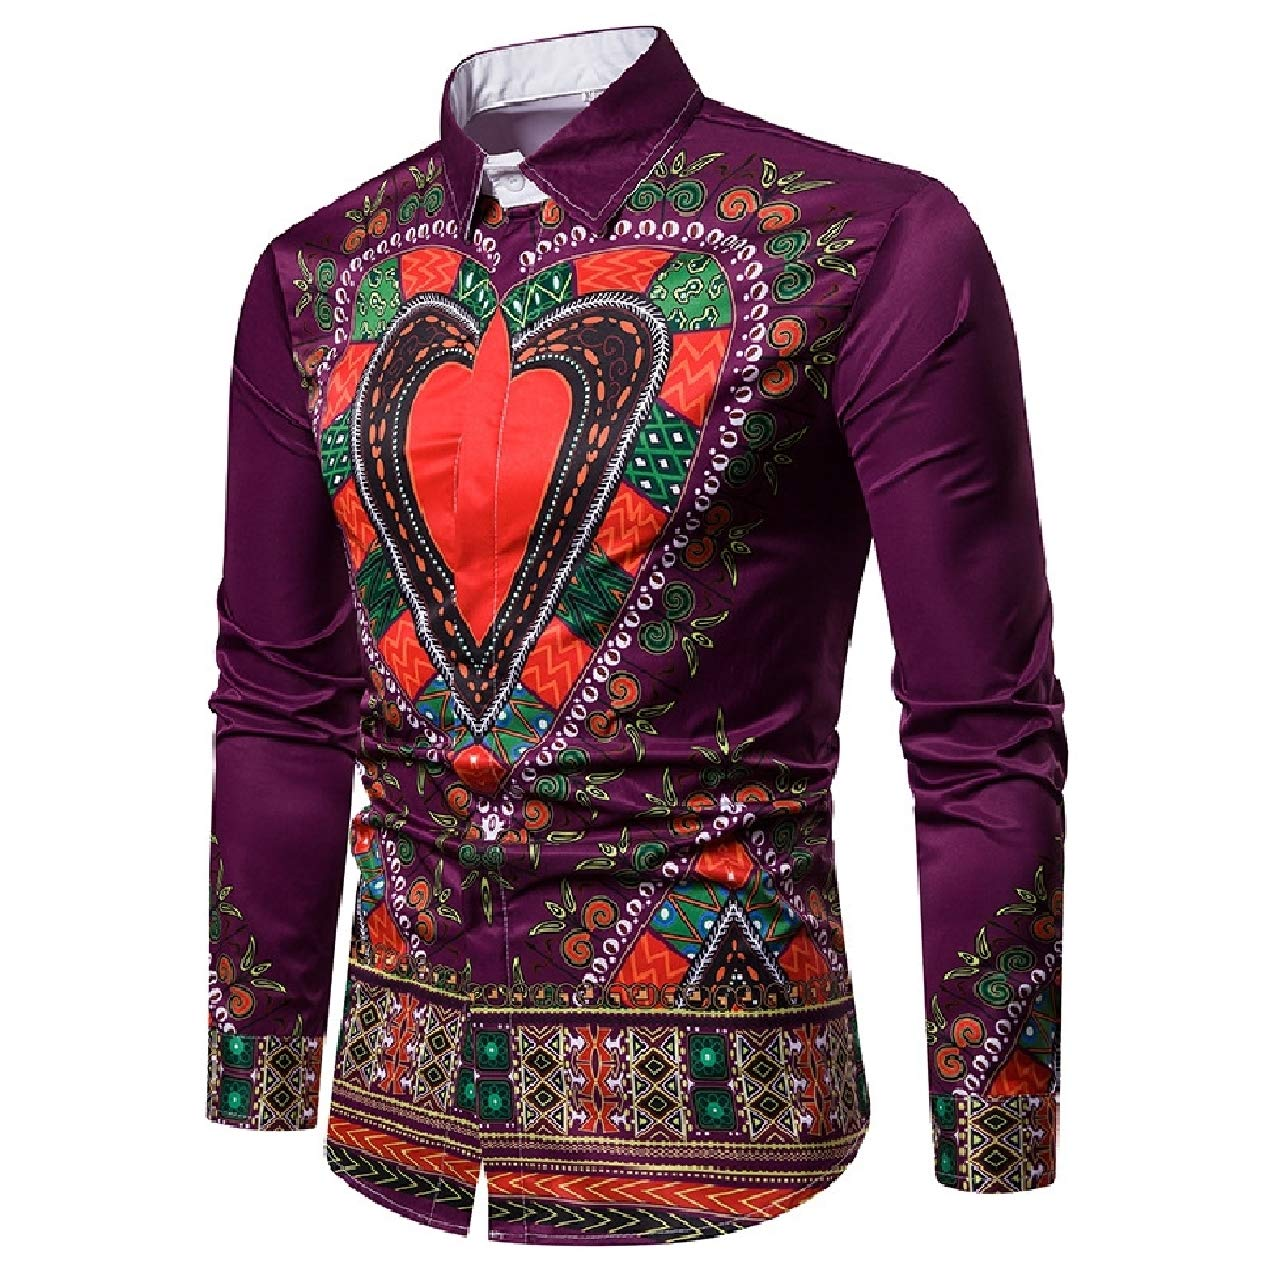 Yusky Mens Fall Winter African Printed Slim Ethnic Style Western Shirt